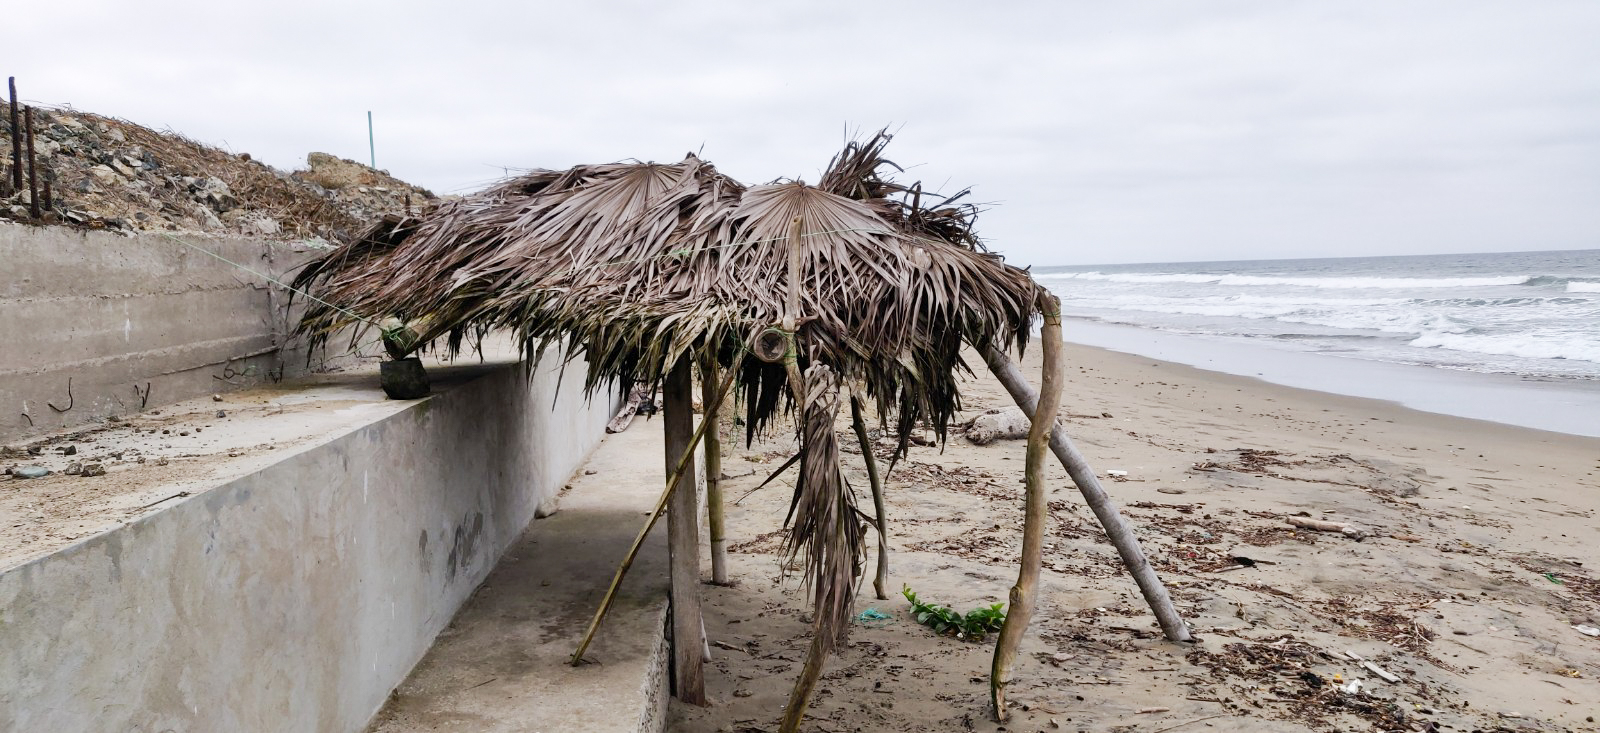 A tropical palapa (what's left of it)